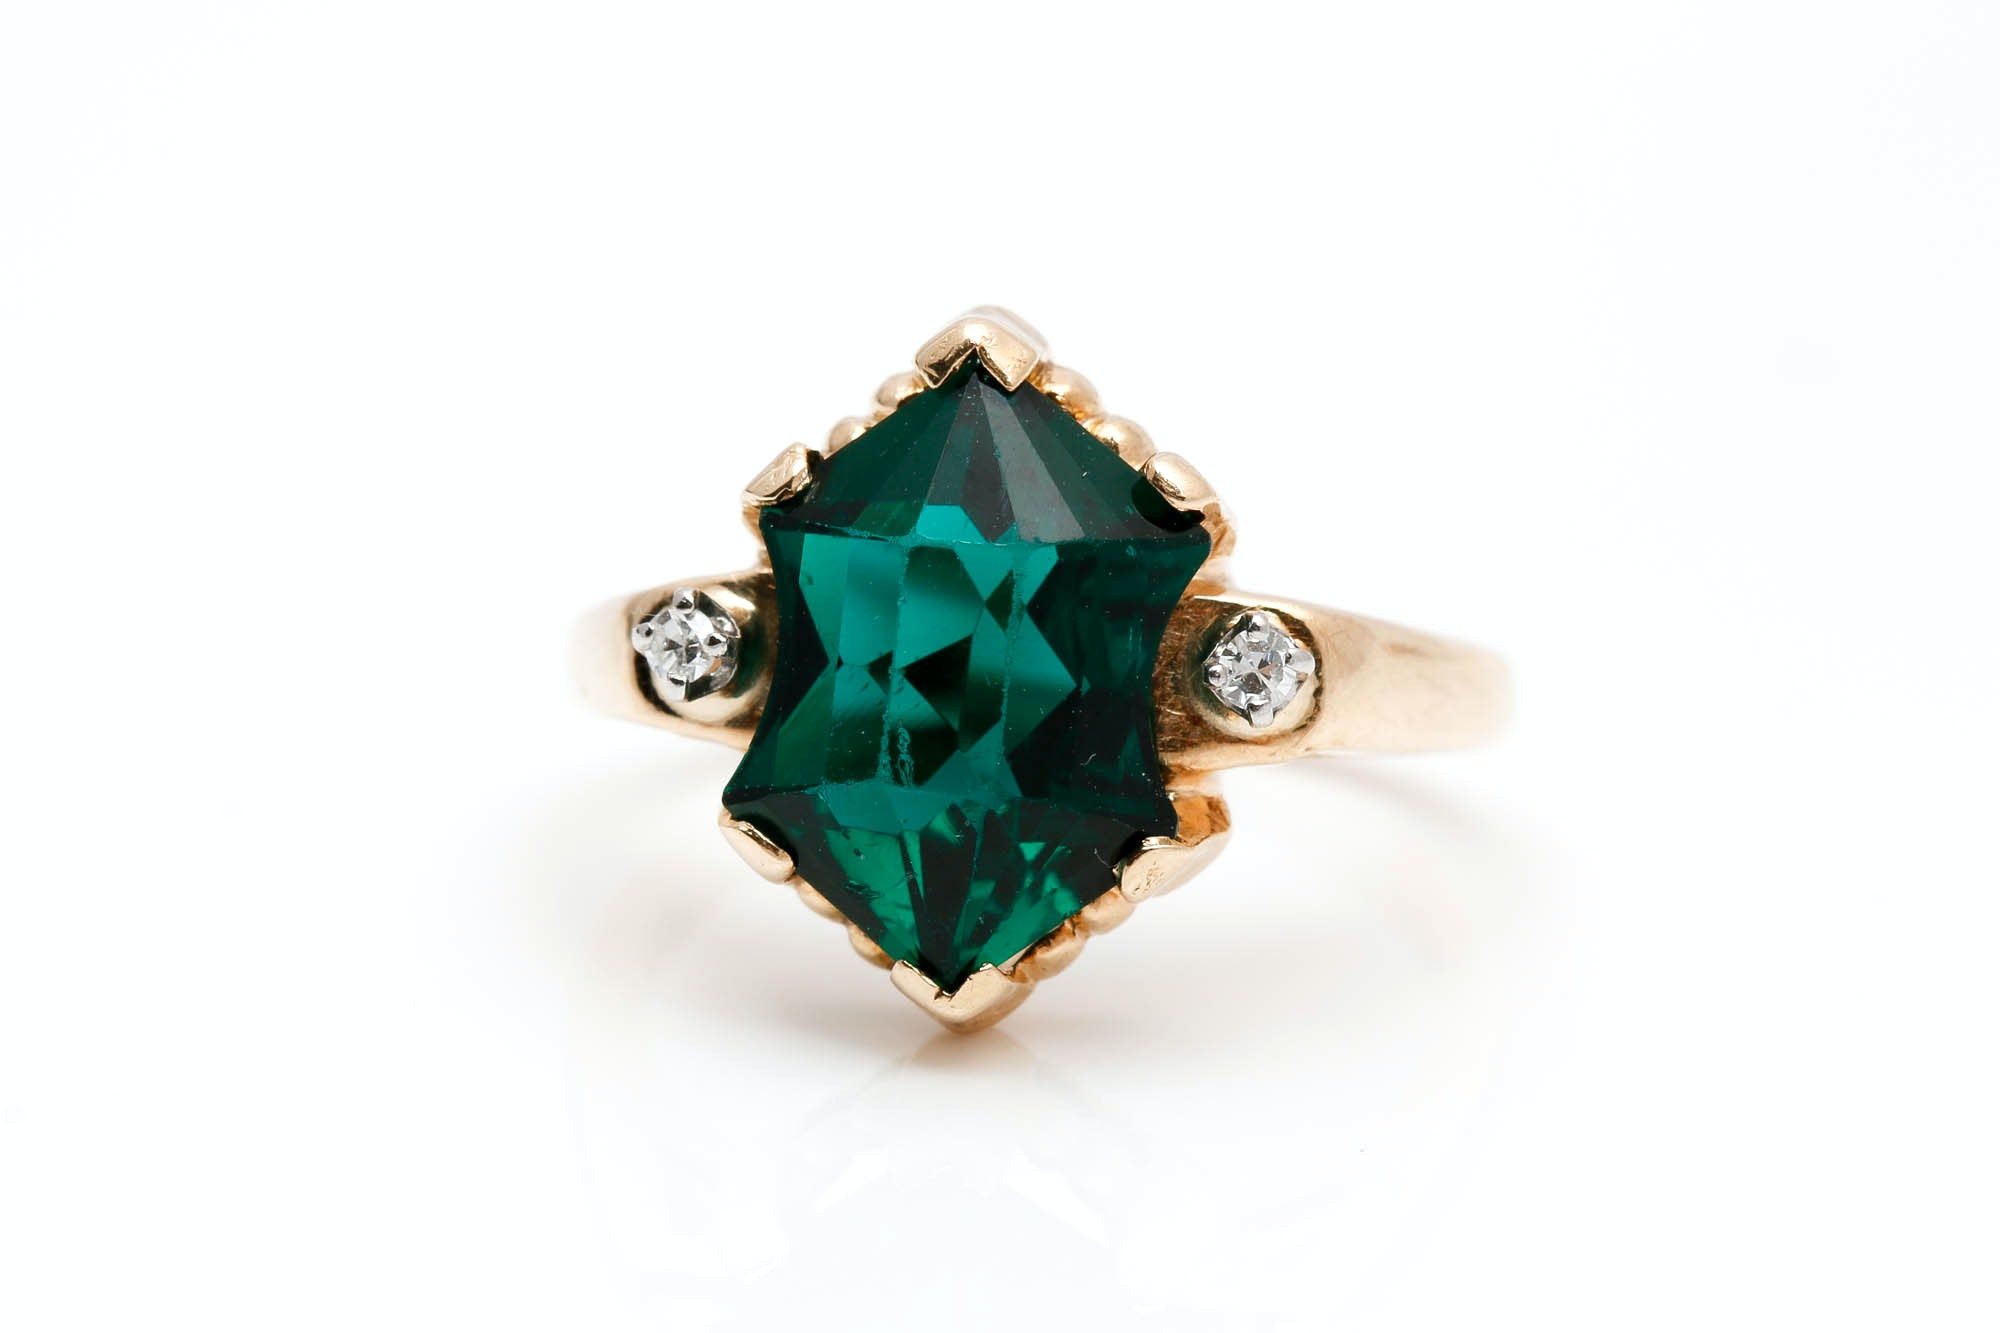 14K Yellow Gold Emerald Colored Glass and Diamond Ring